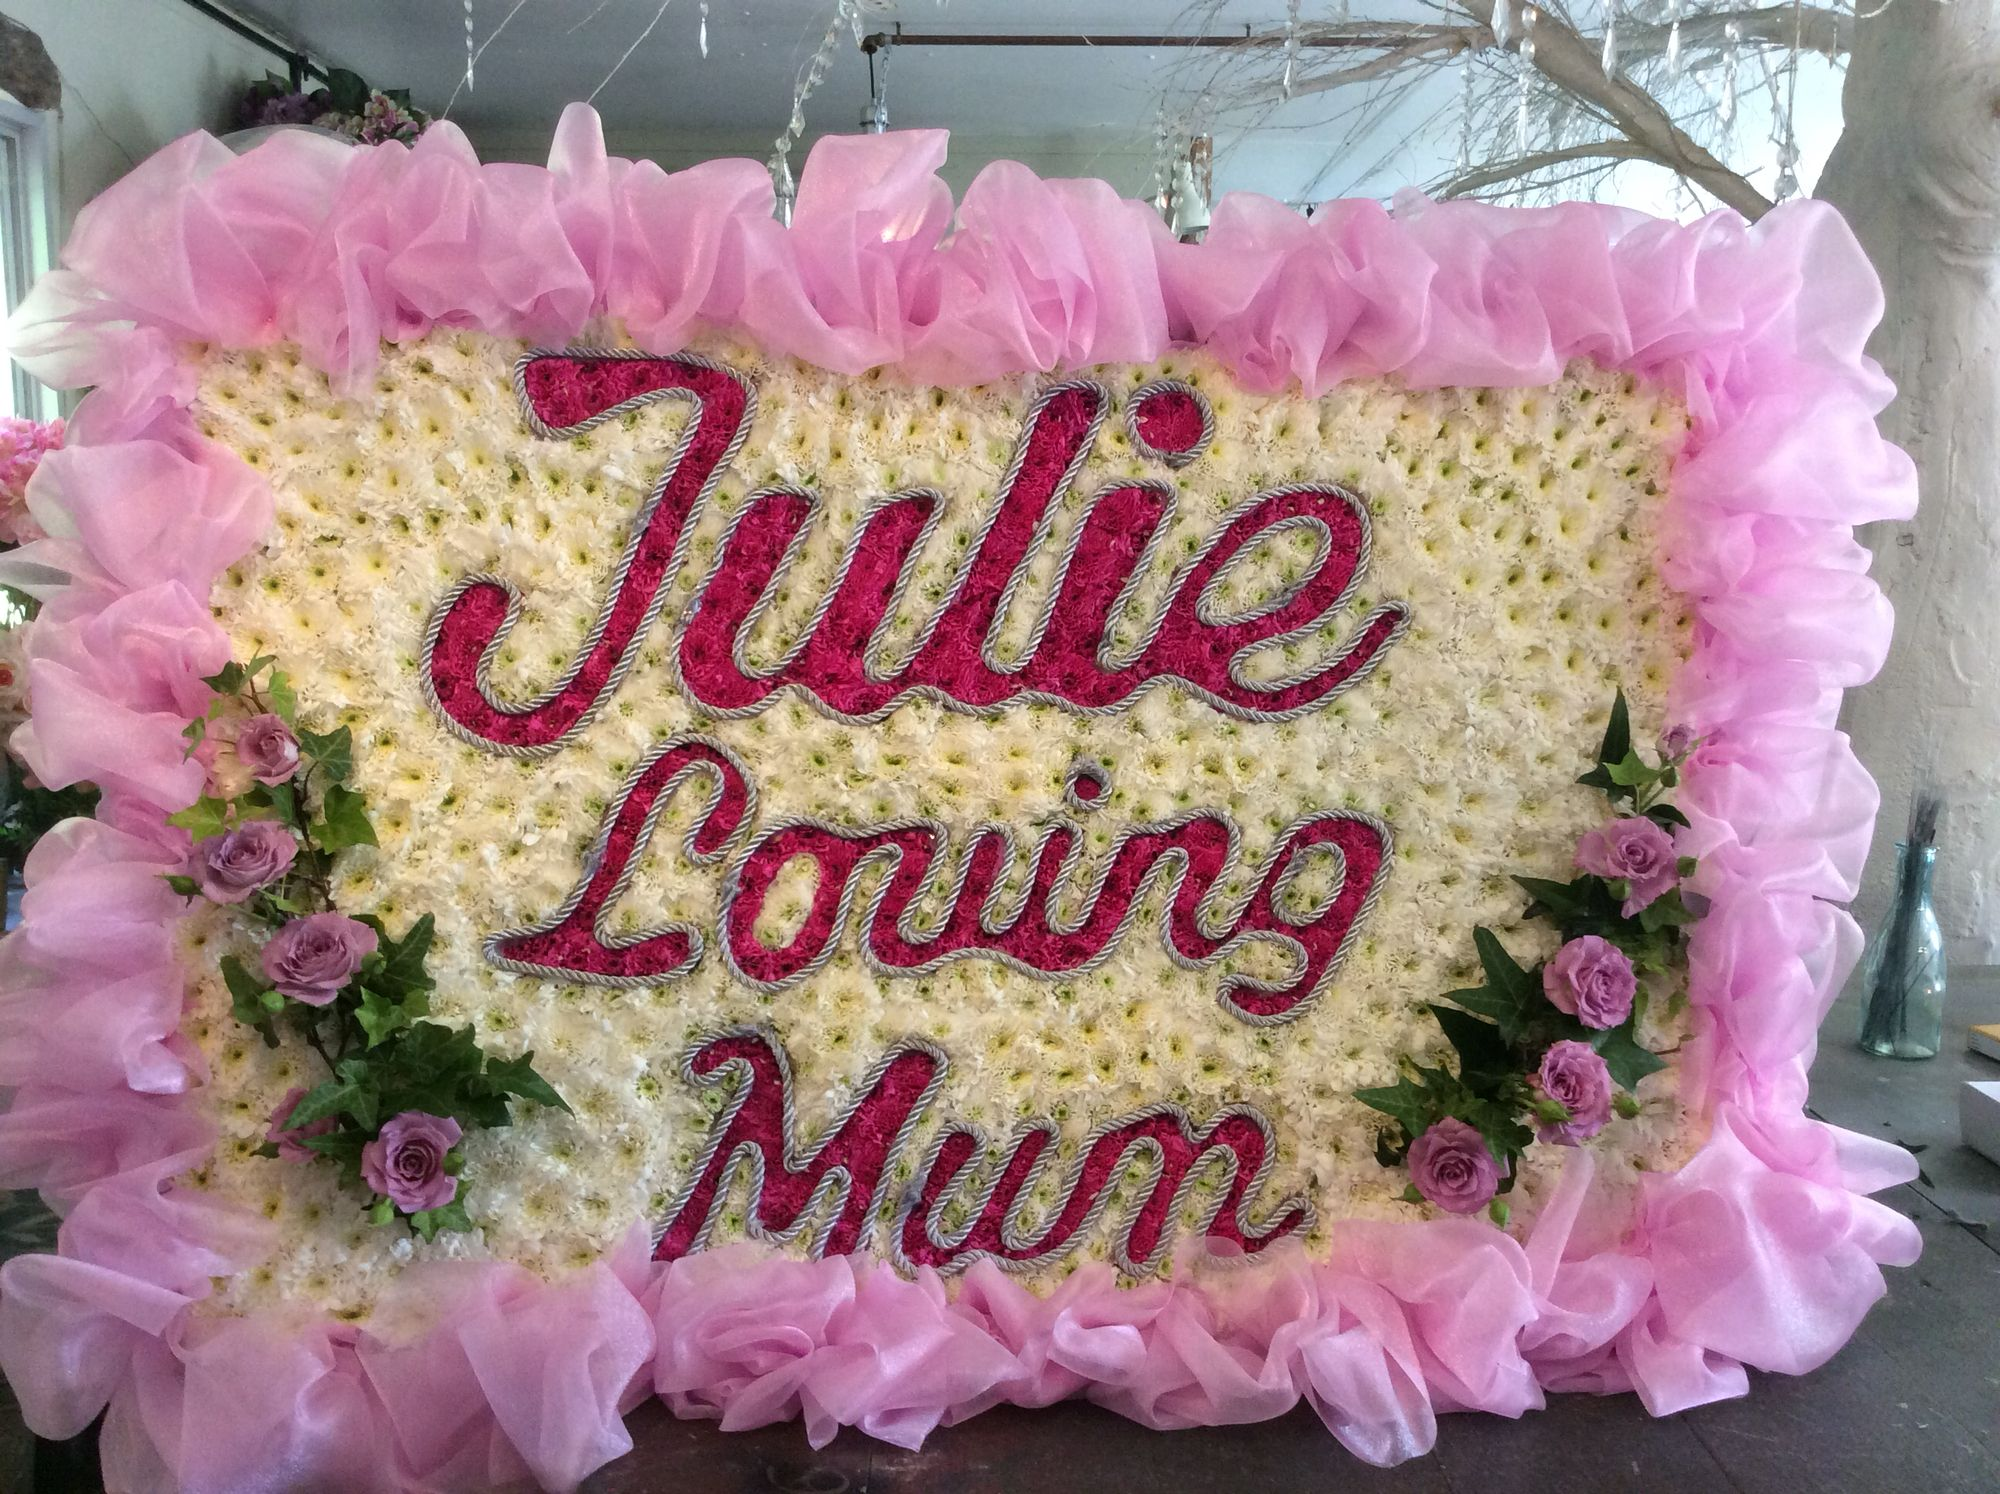 Bespoke funeral word tribute pink letters pink roses pink chiffon bespoke funeral word tribute pink letters pink roses pink chiffon izmirmasajfo Image collections